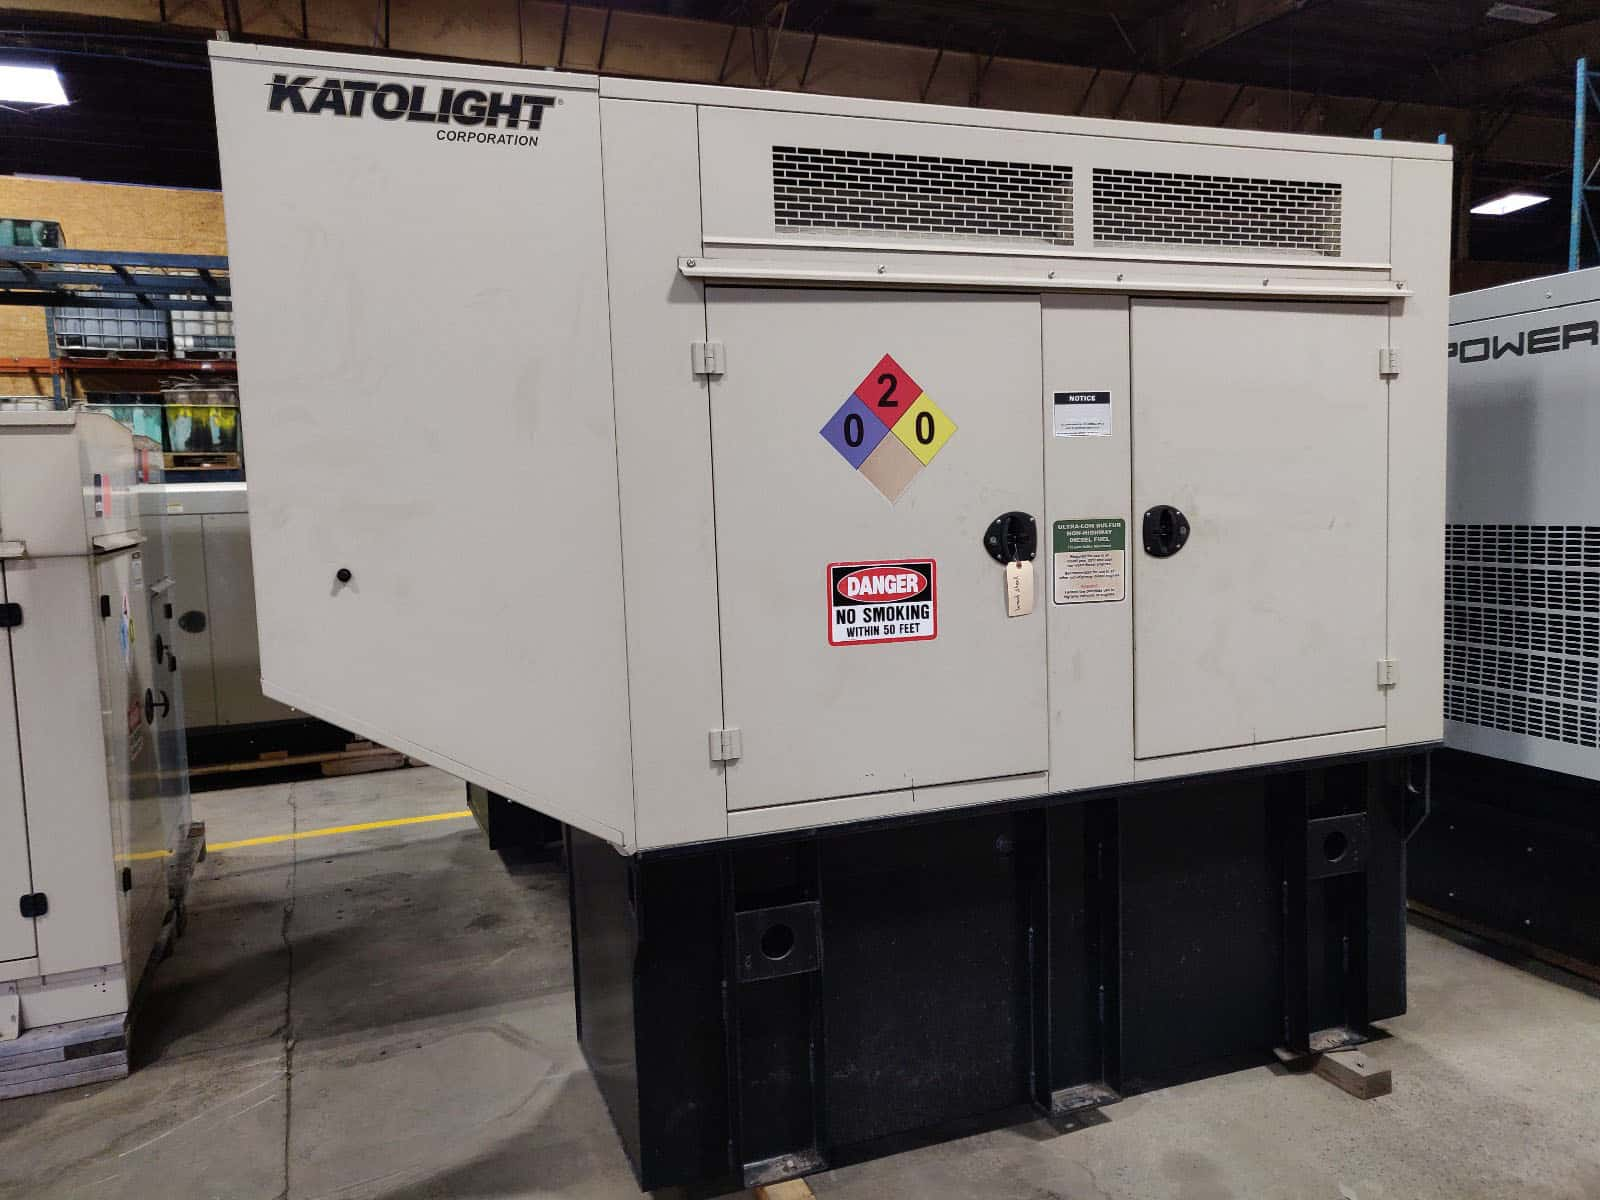 Used 60 kW Katolight/John Deere Diesel Generator – EPA Tier 2 Rated – JUST IN!